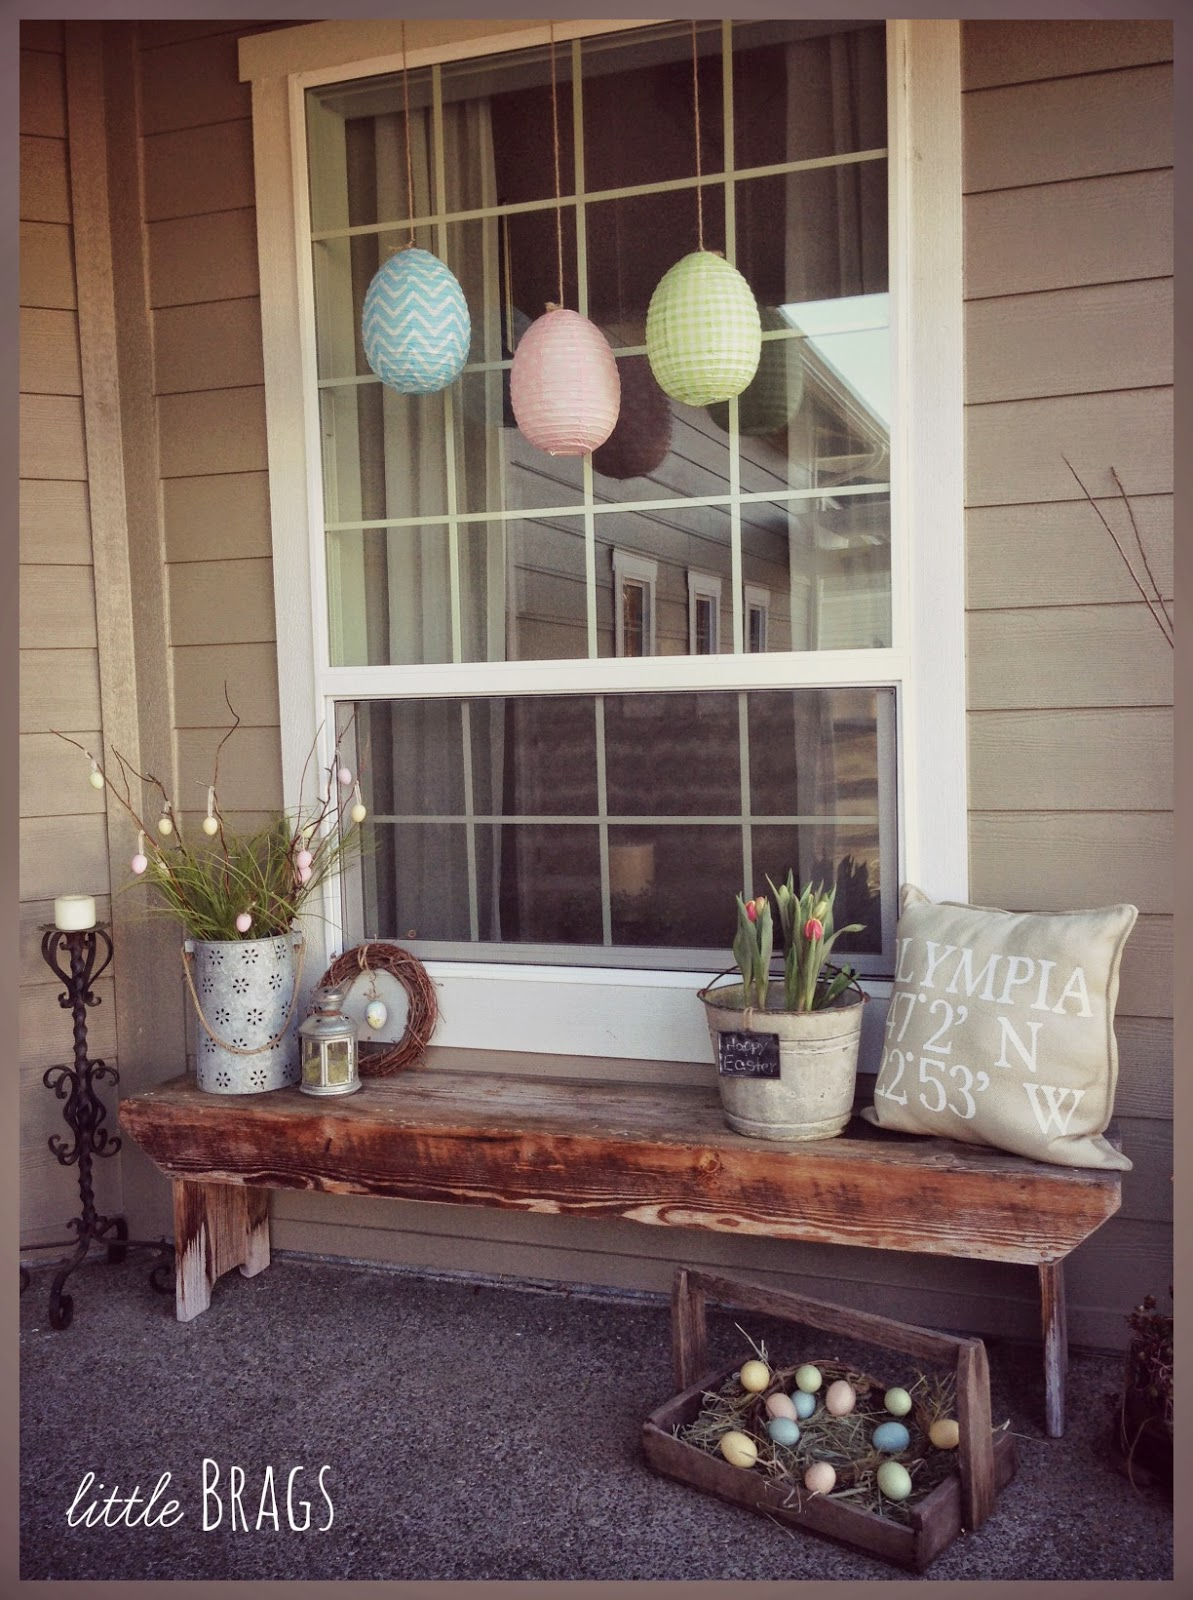 Little brags a little easter decorating on the front porch for Outdoor decorating ideas for spring